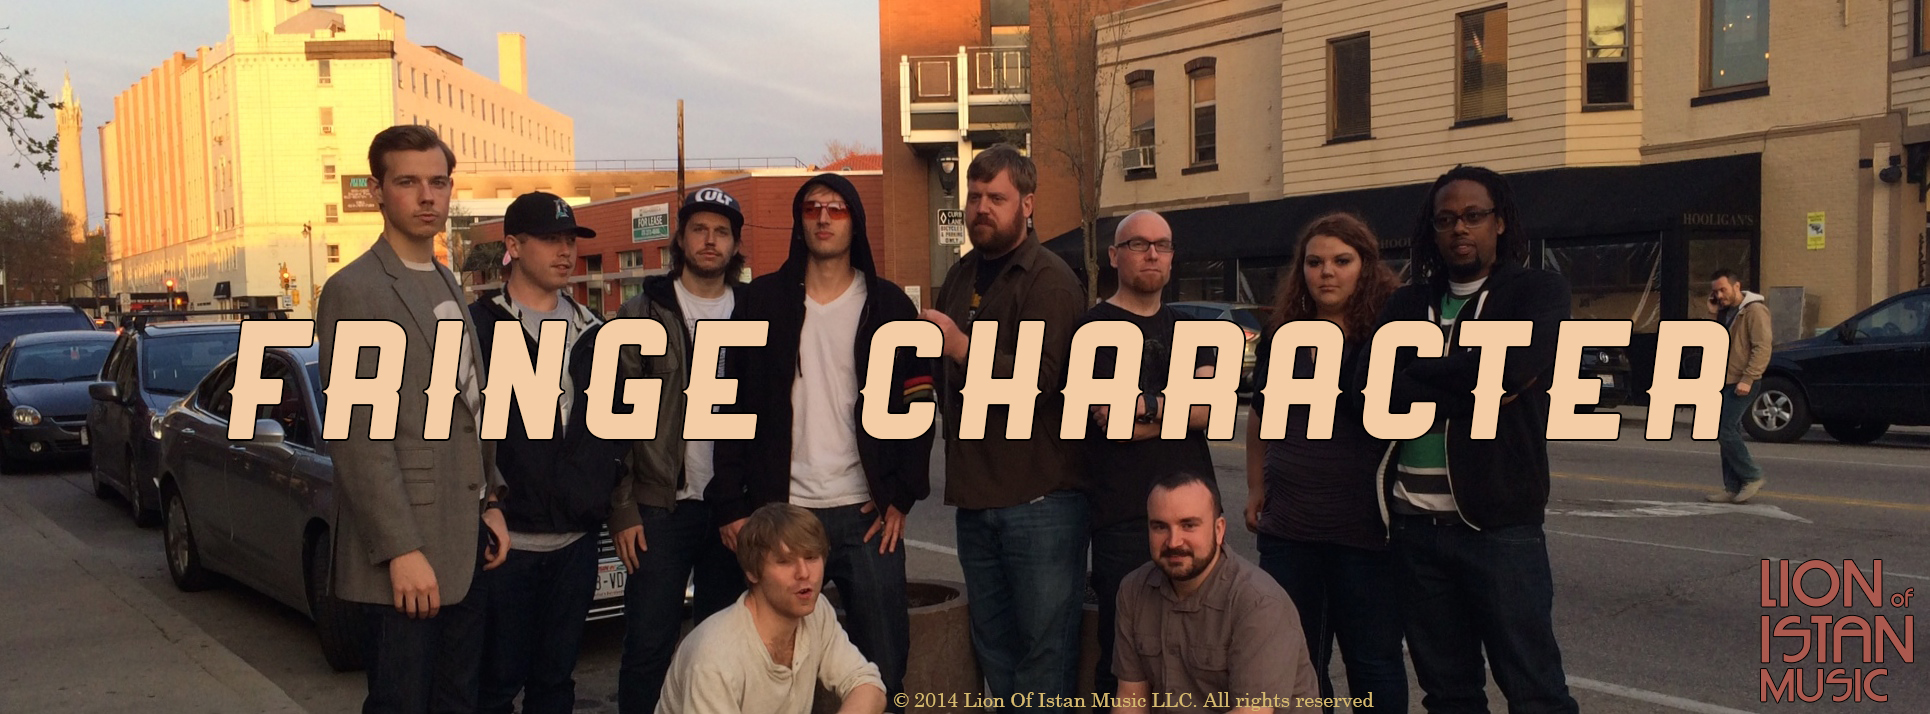 FRINGE CHARACTER – Thu., July 24, 2014 – The Majestic Theatre